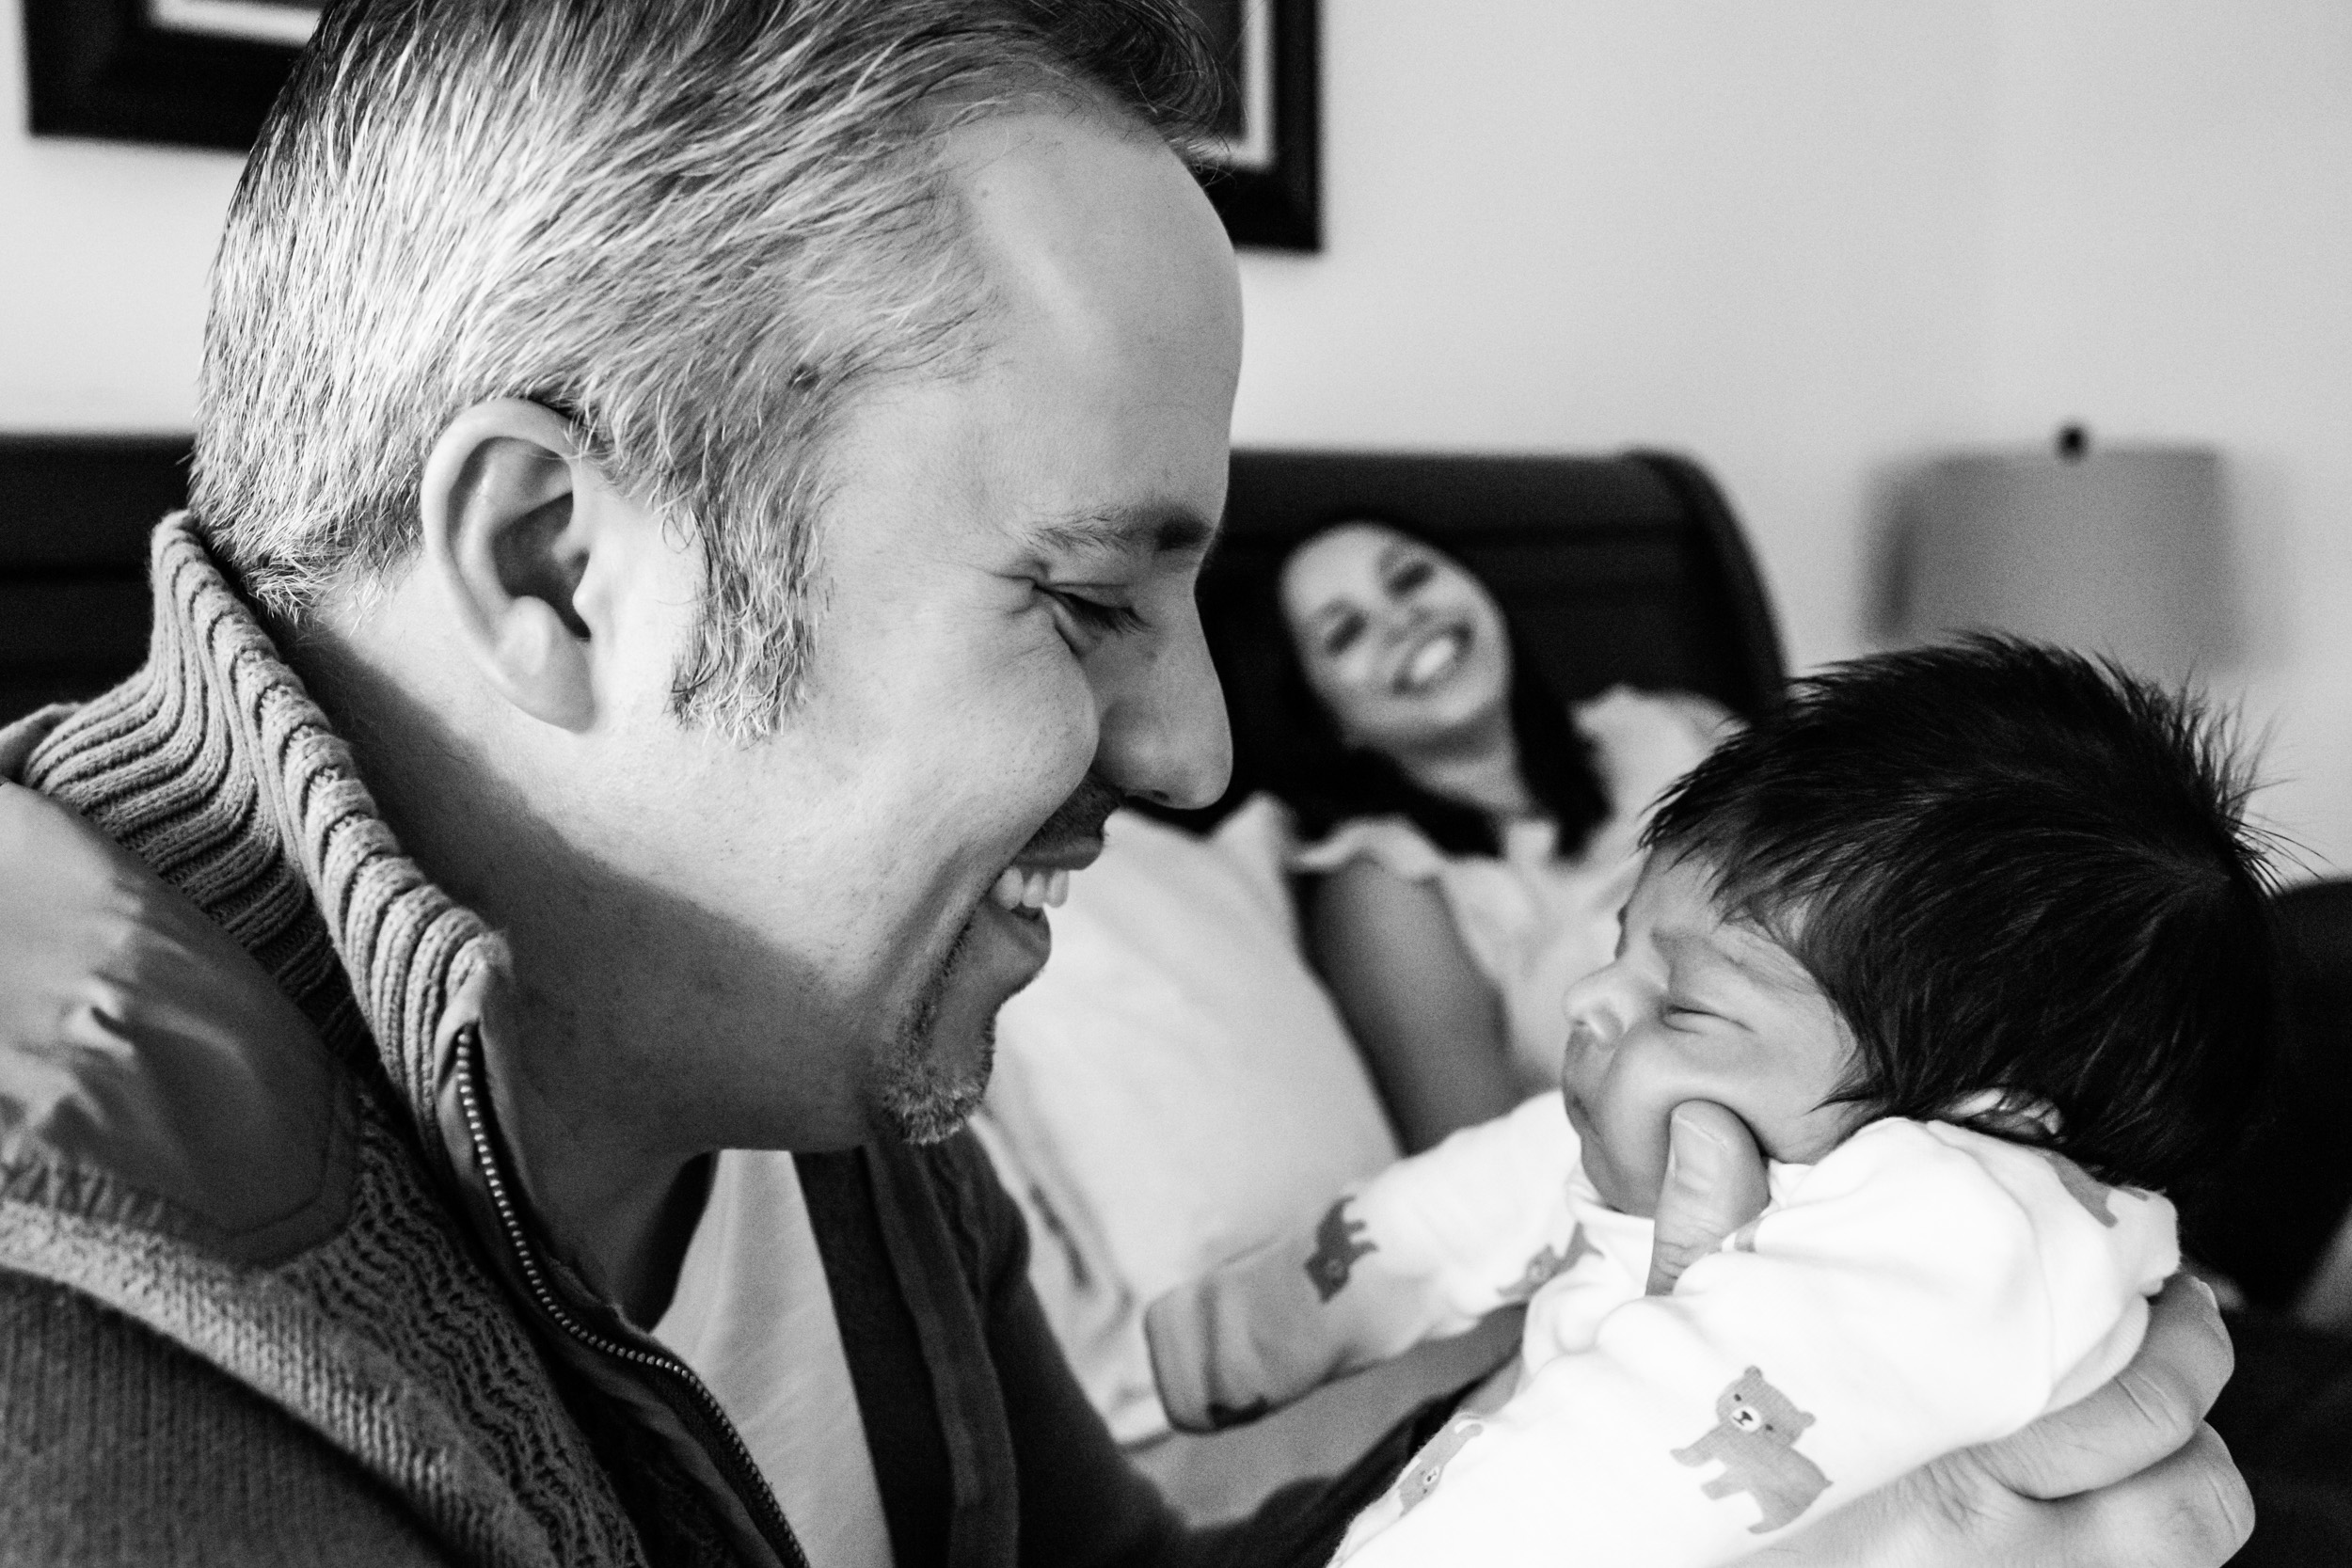 jacksonville dad holding and smiling at his newborn